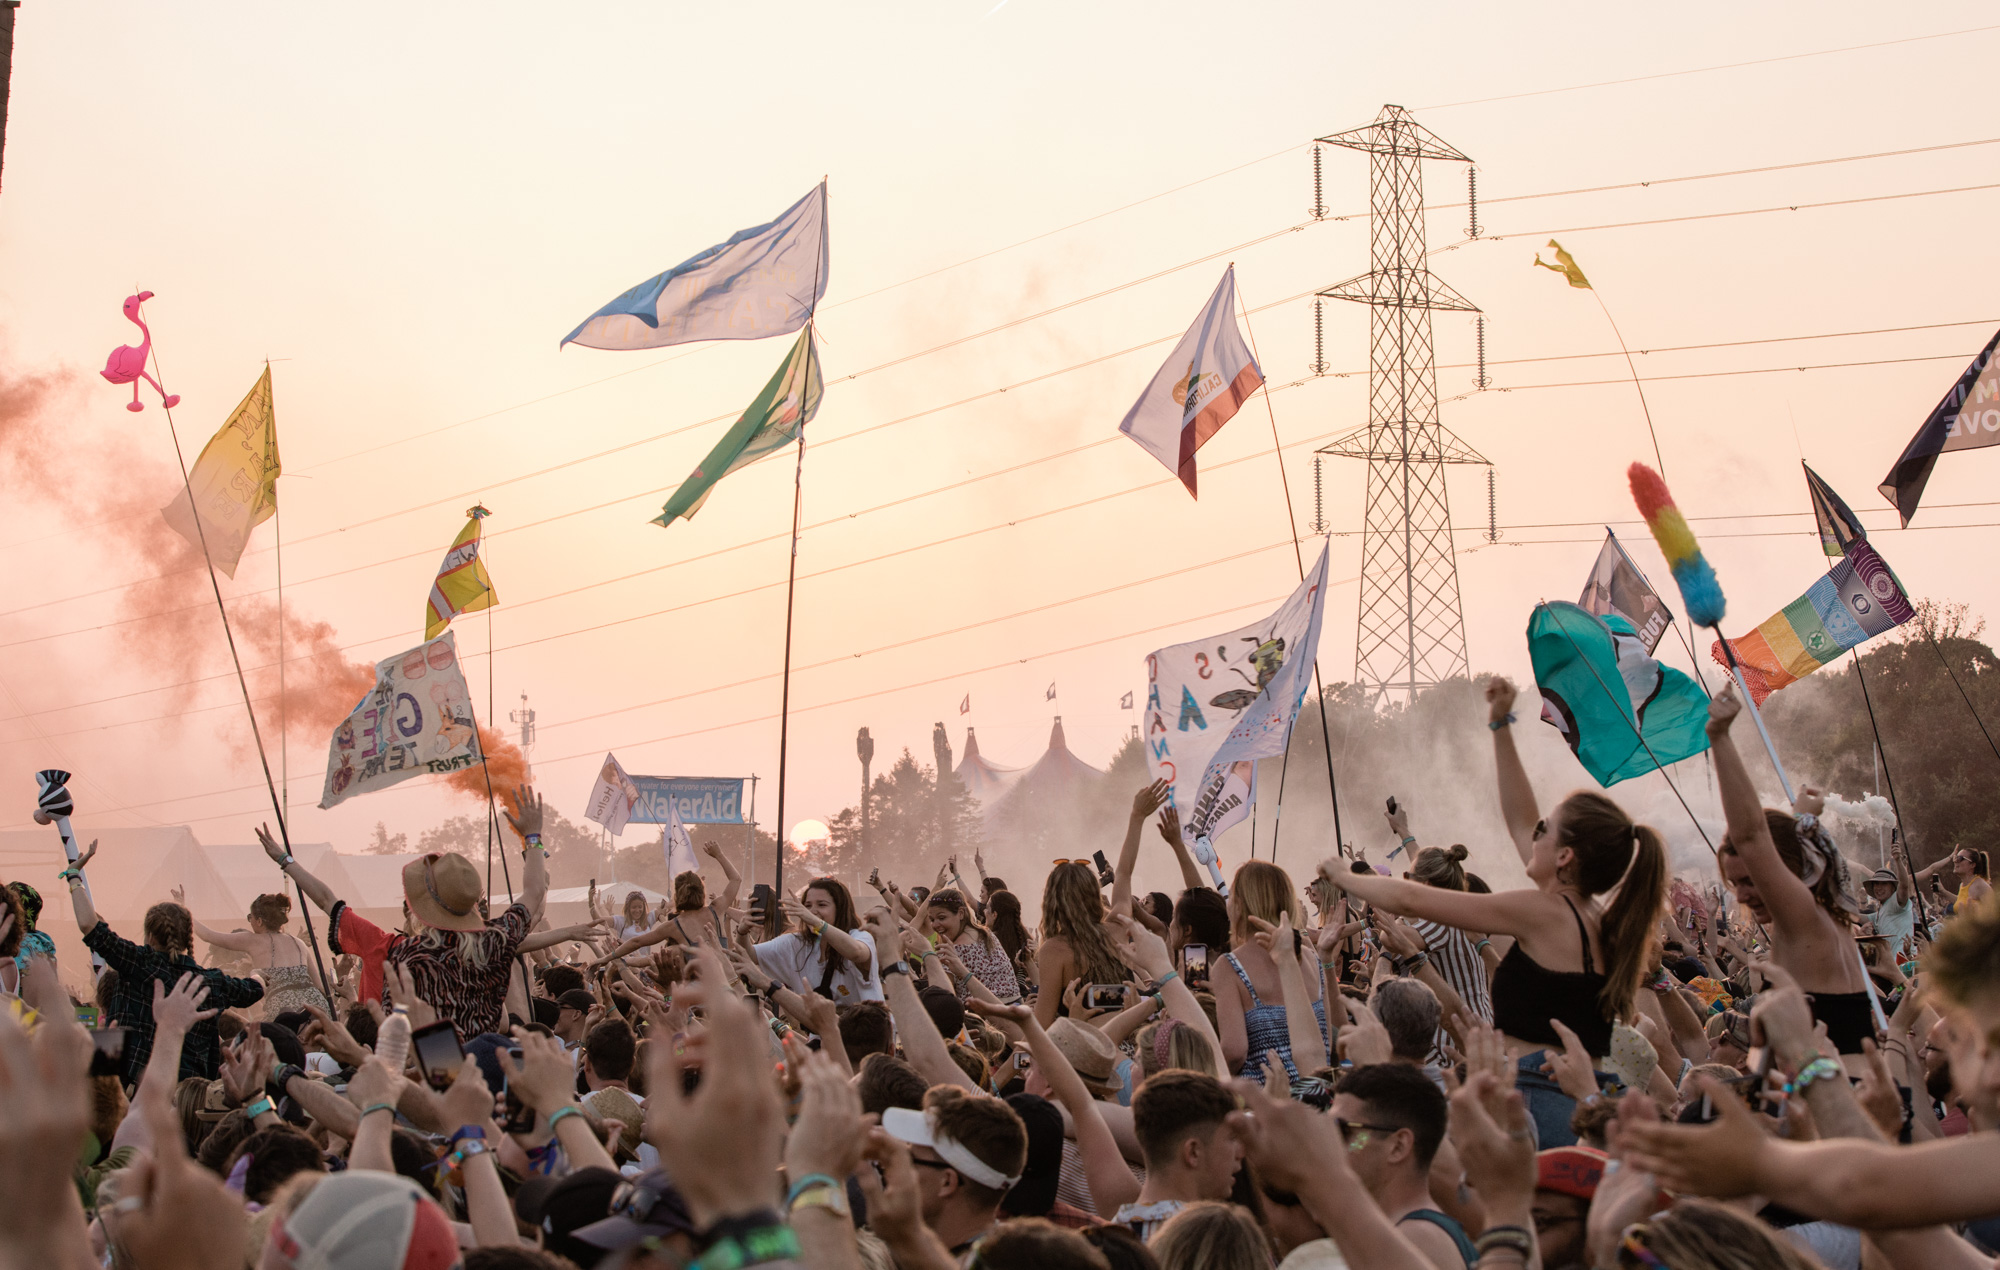 Glastonbury 2020: all you need to know about dates, line-up rumours, tickets, and more for the 50th anniversary festival | NME